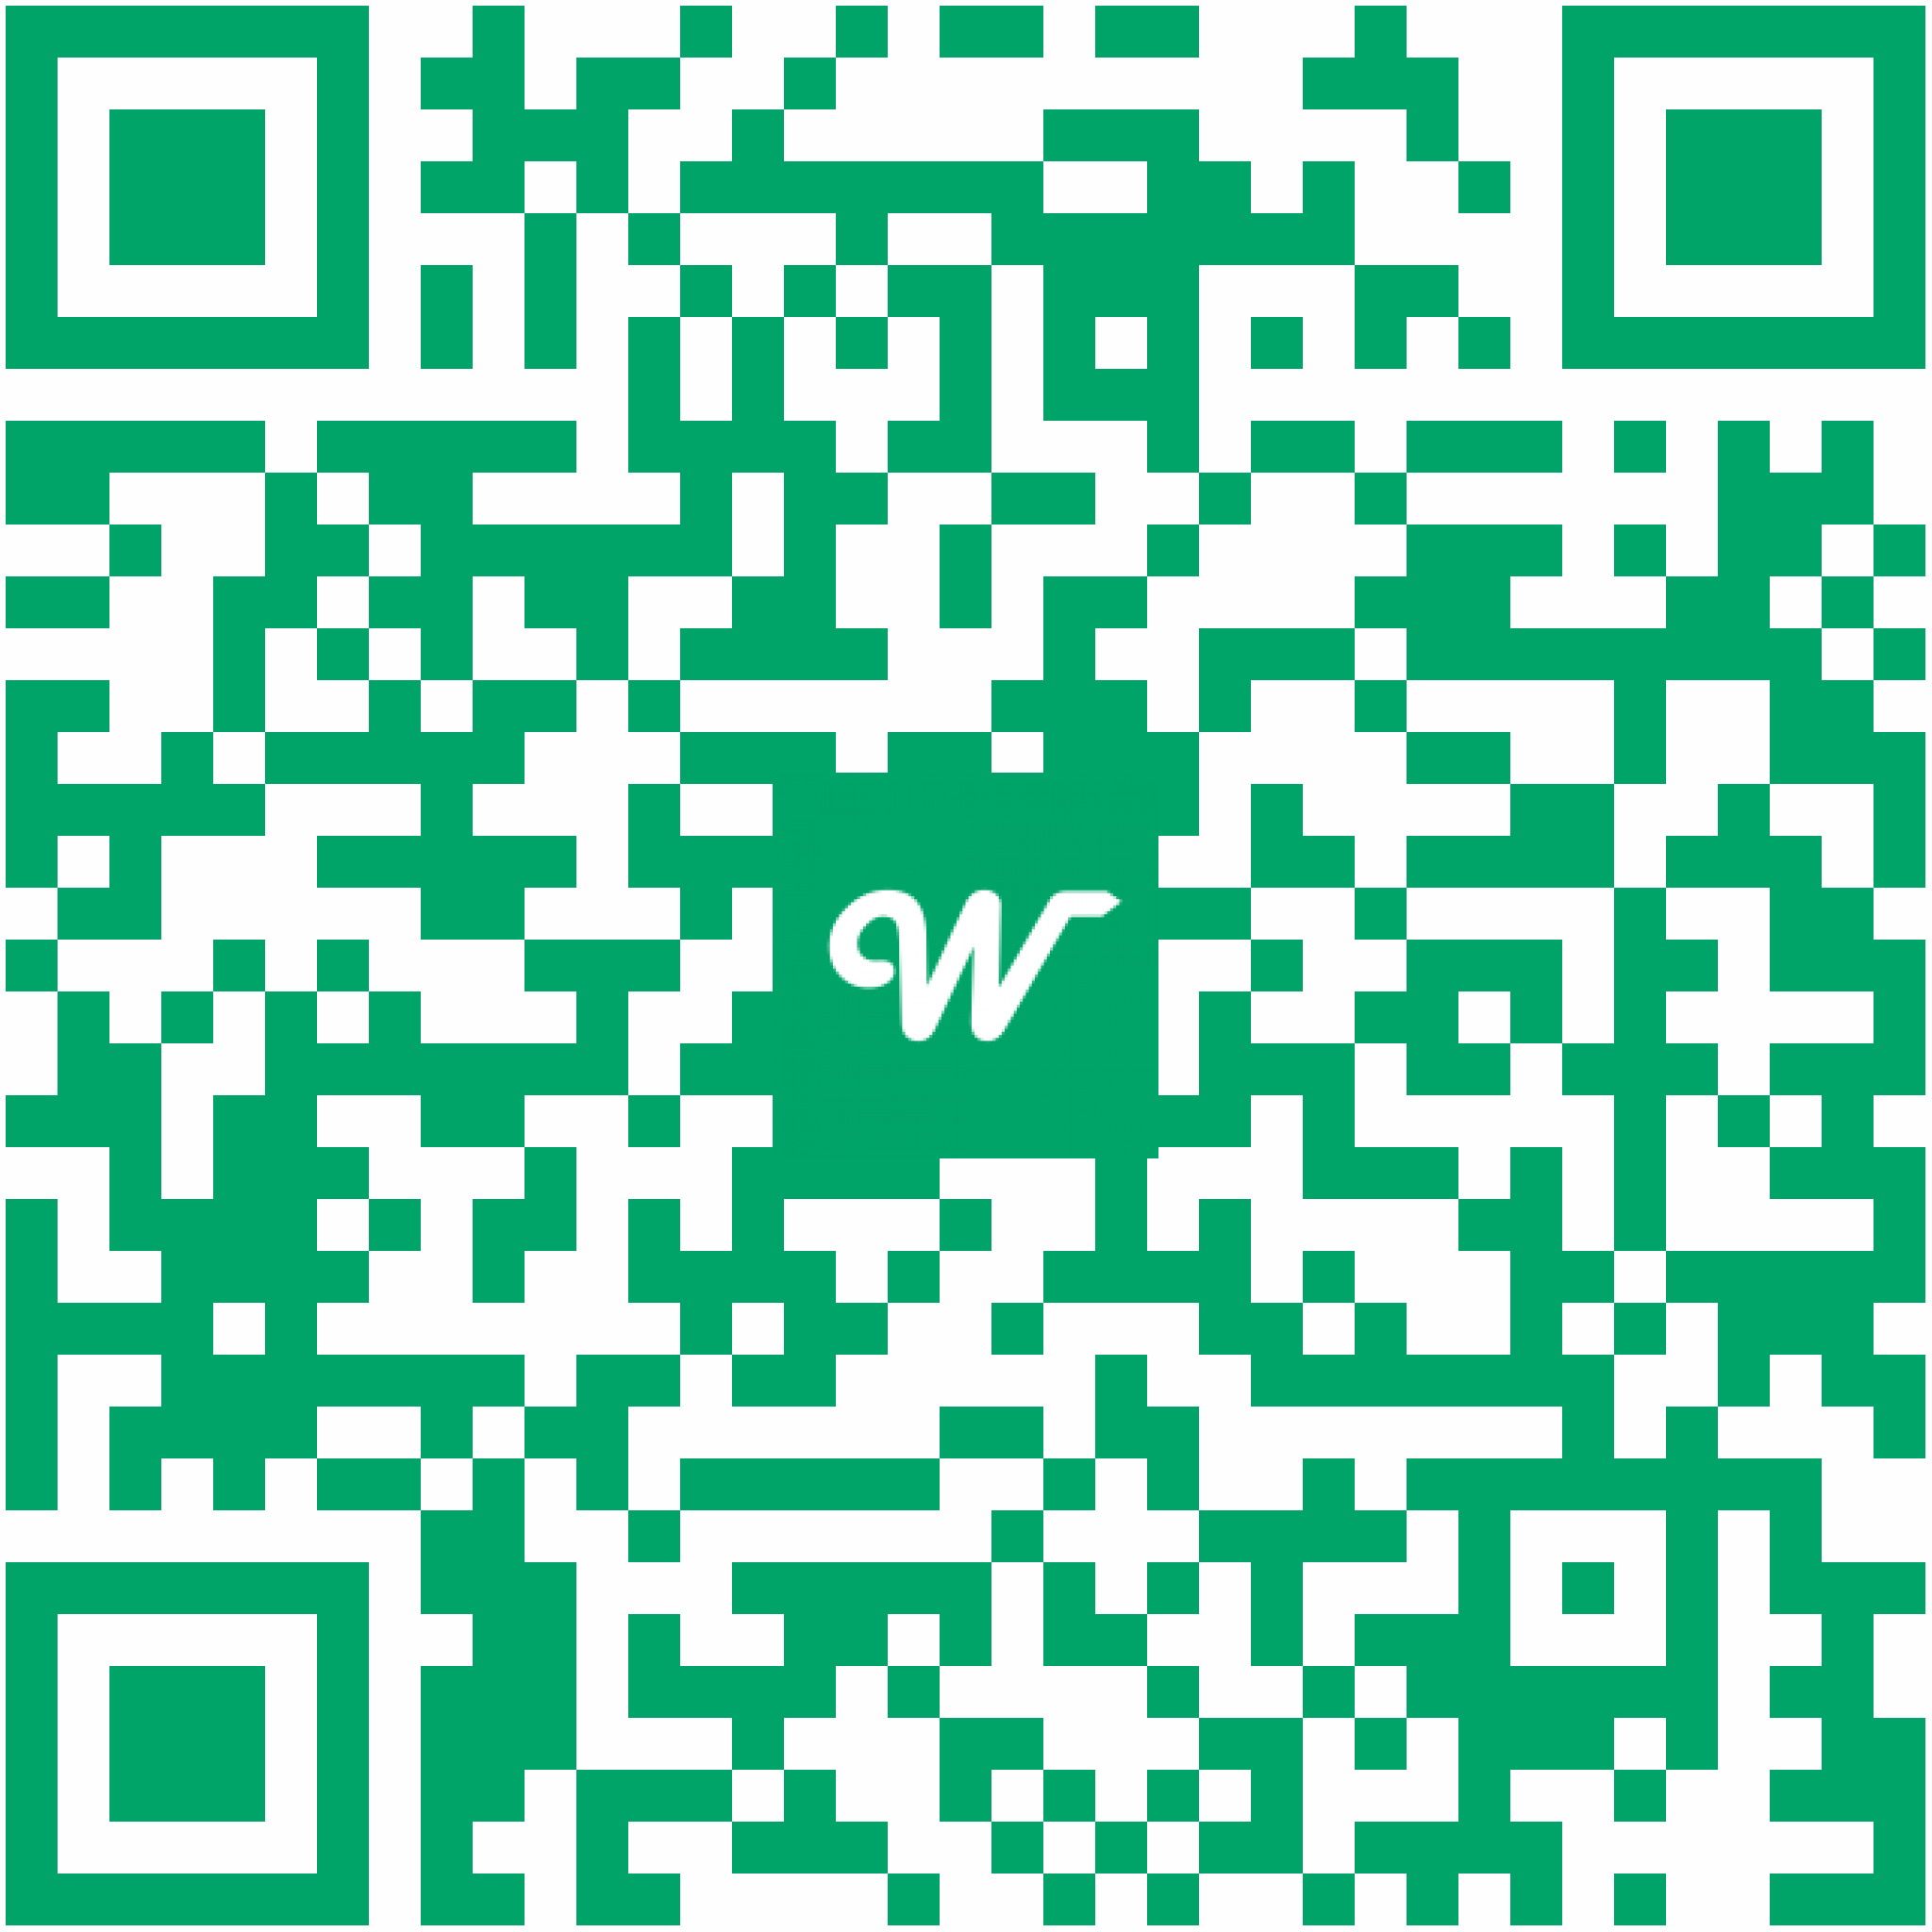 Printable QR code for Sun Inns Hotel Sentral, Brickfields